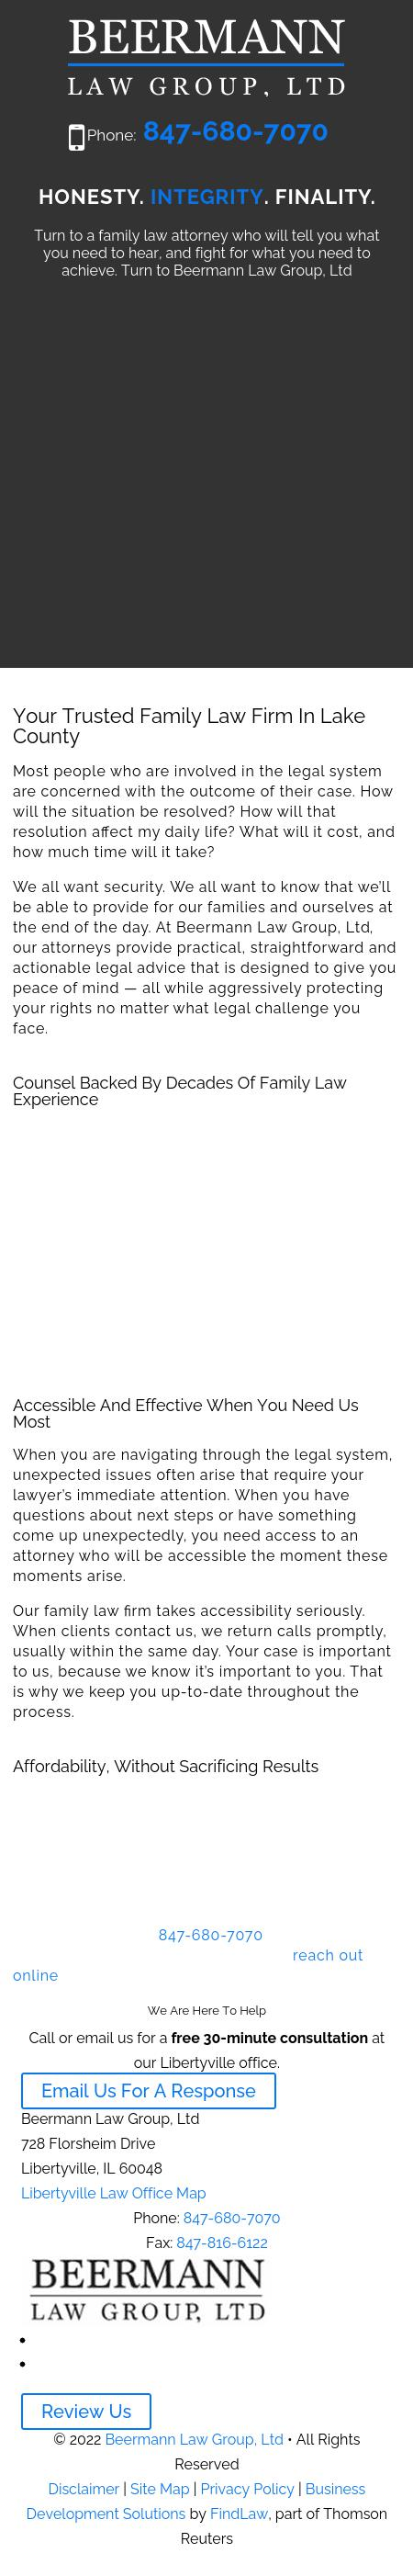 Beermann Law Group, Ltd - Libertyville IL Lawyers